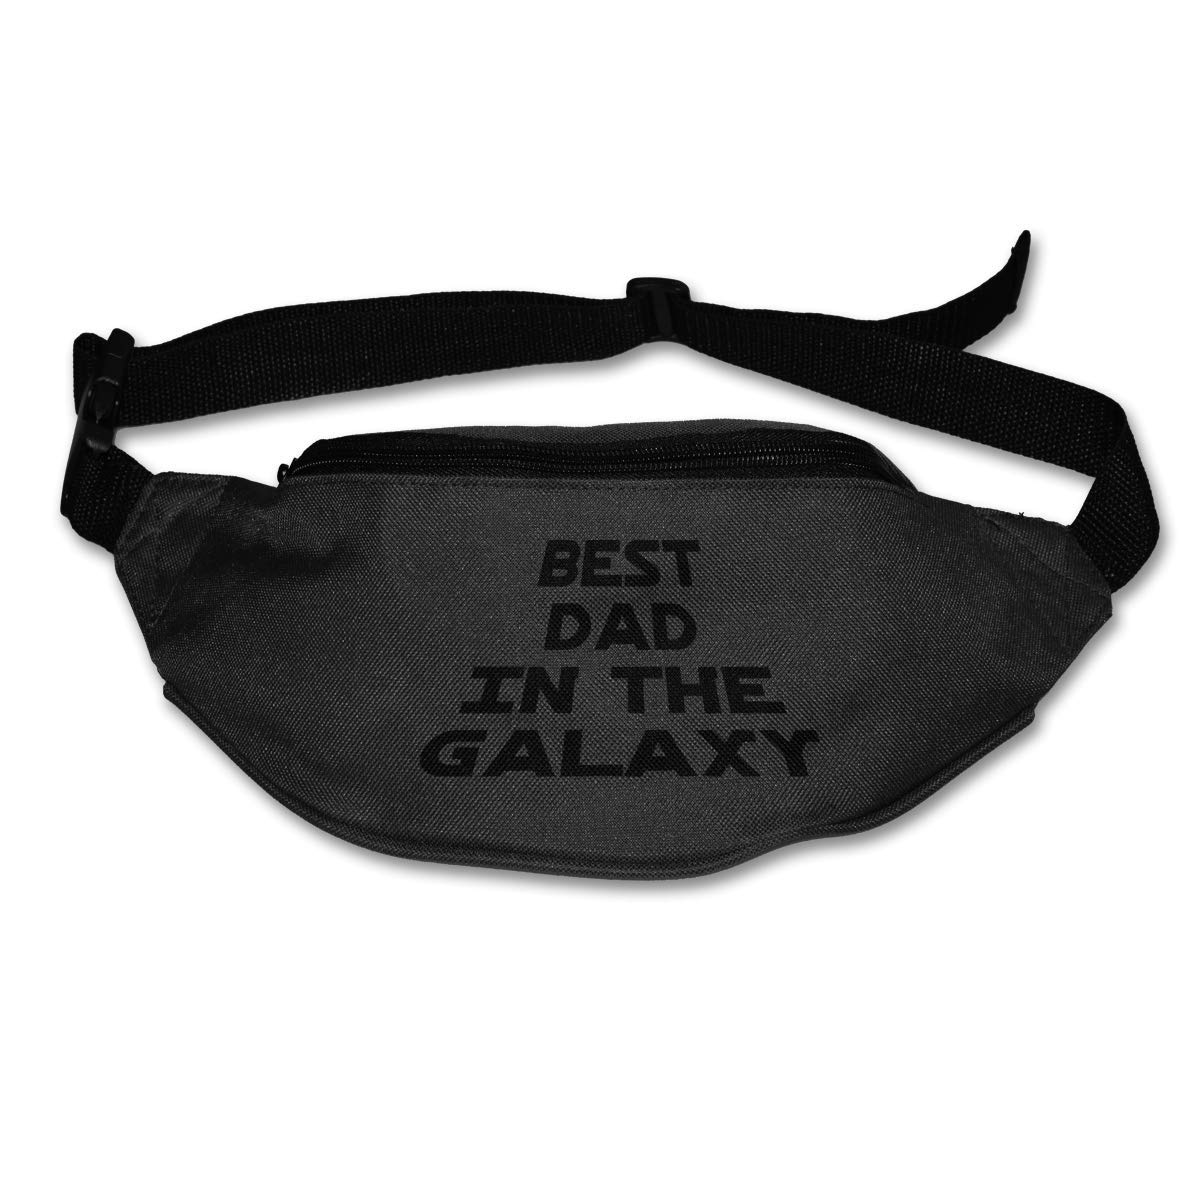 Best Dad In The Galaxy Sport Waist Bag Fanny Pack Adjustable For Travel